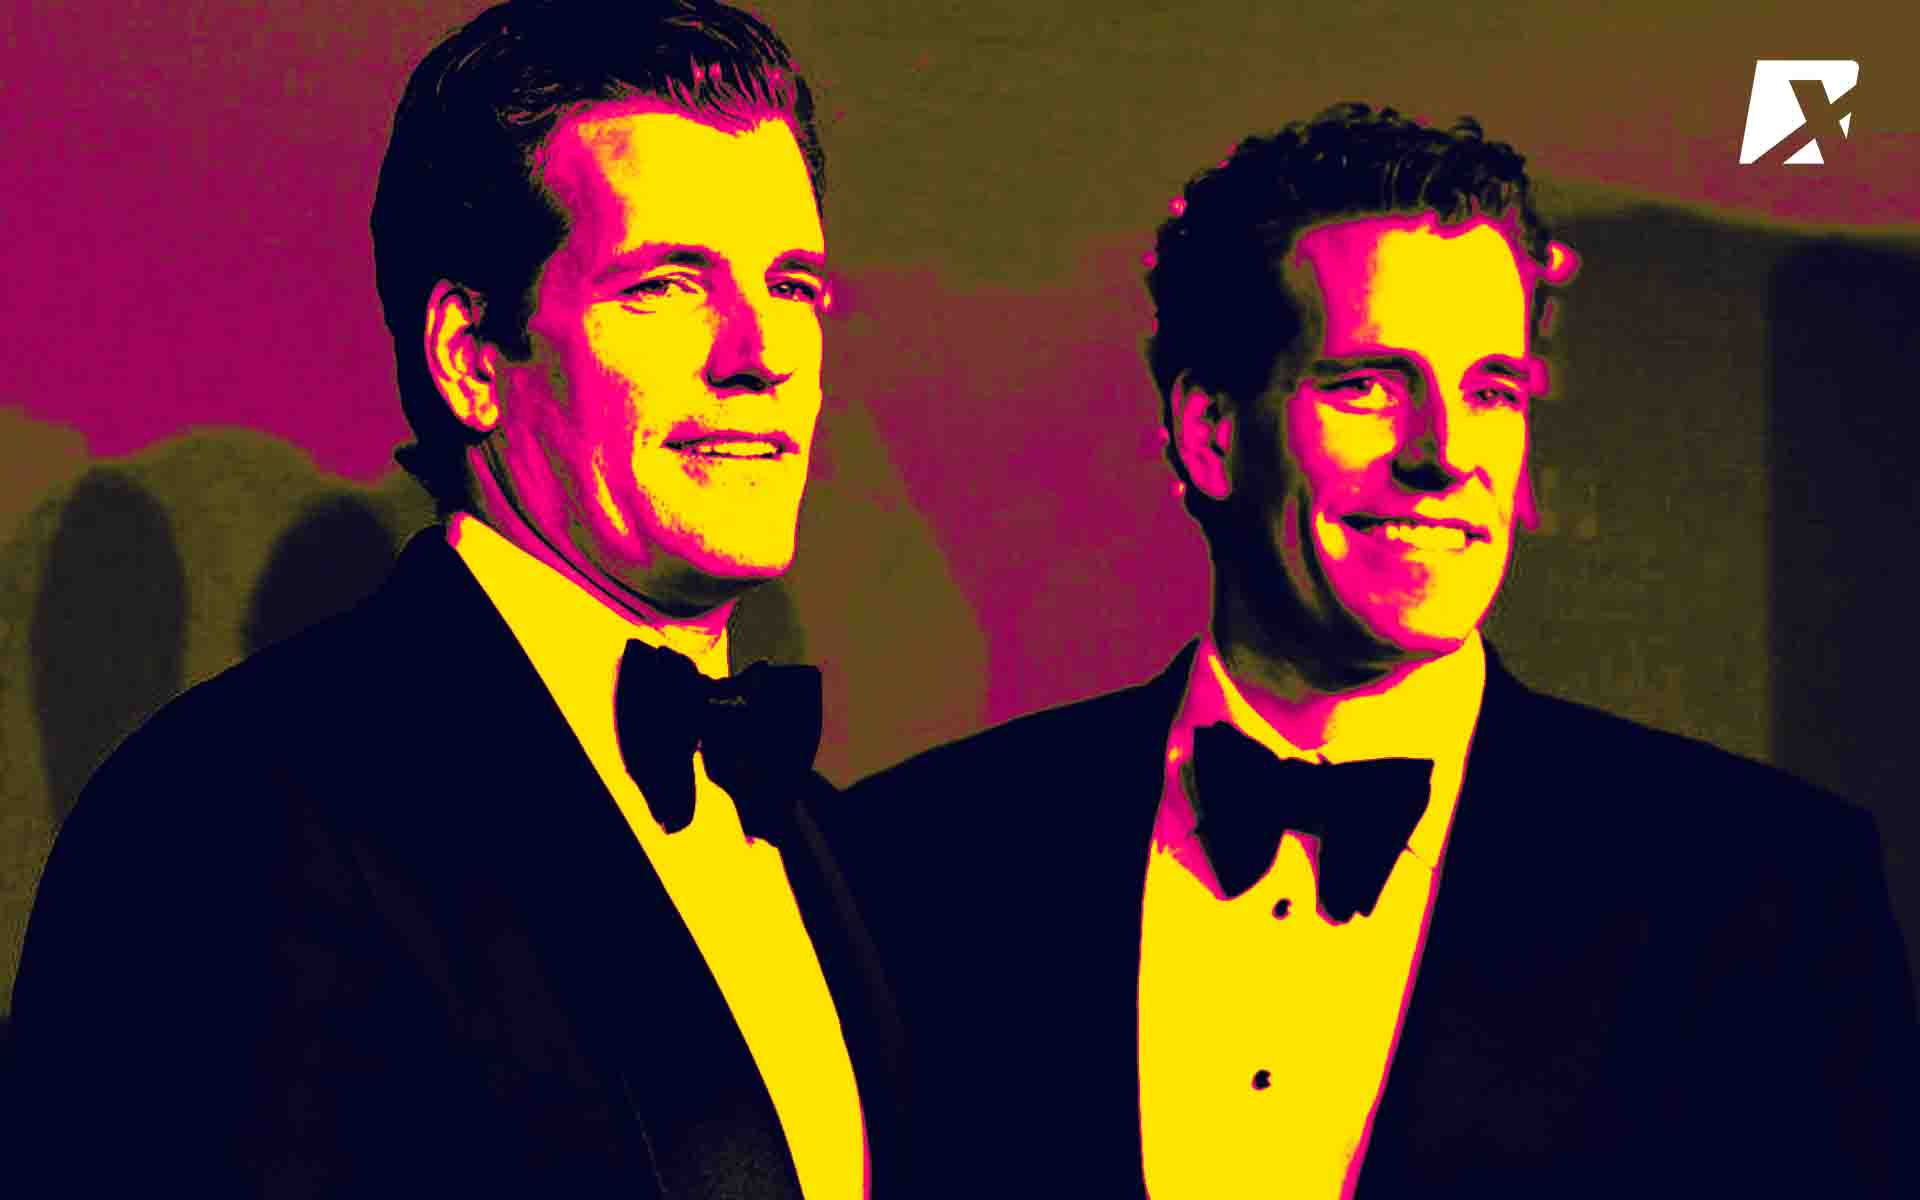 New York Regulators Say Yes To The Winklevoss Brothers' Stablecoin